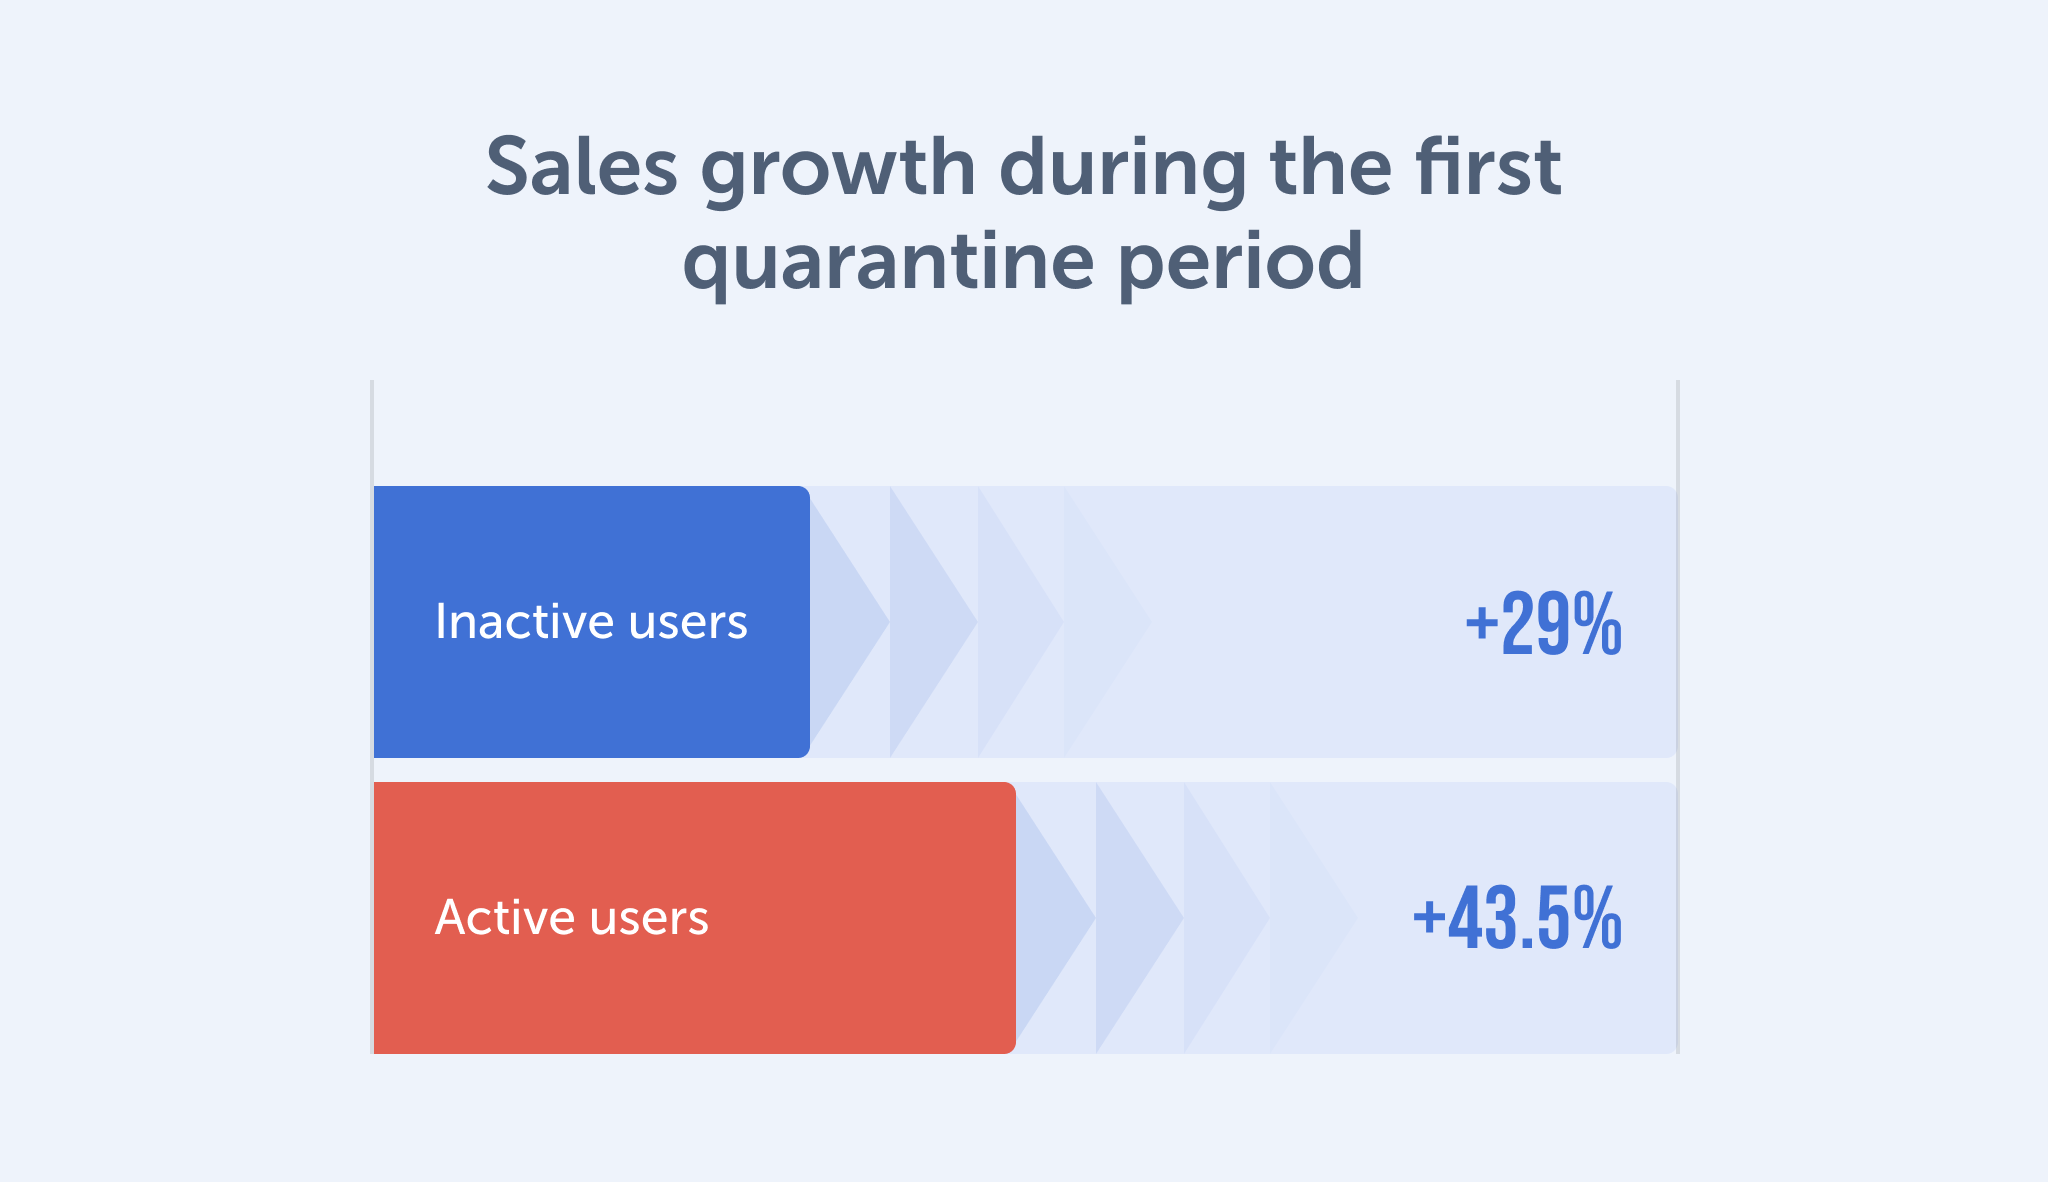 direct selling sales growth during the first quarantine period